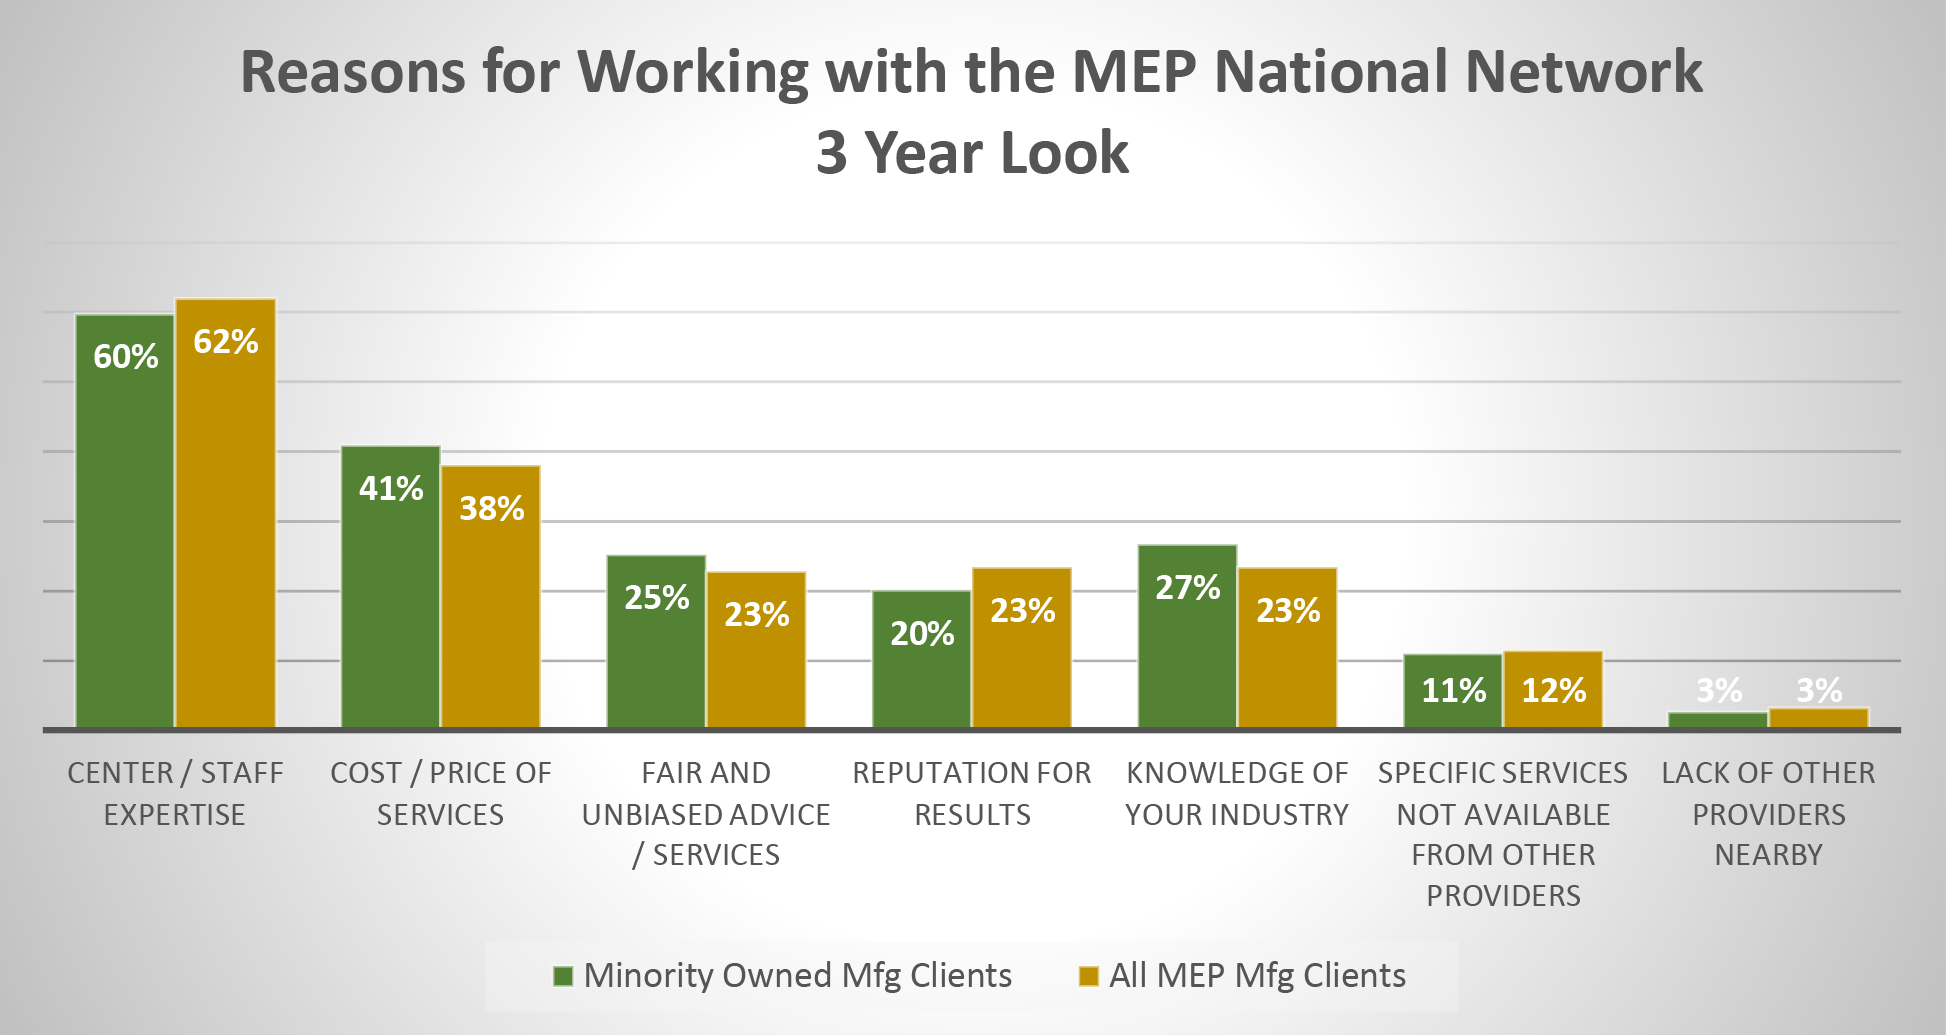 reasons for working with the MEP National Network chart